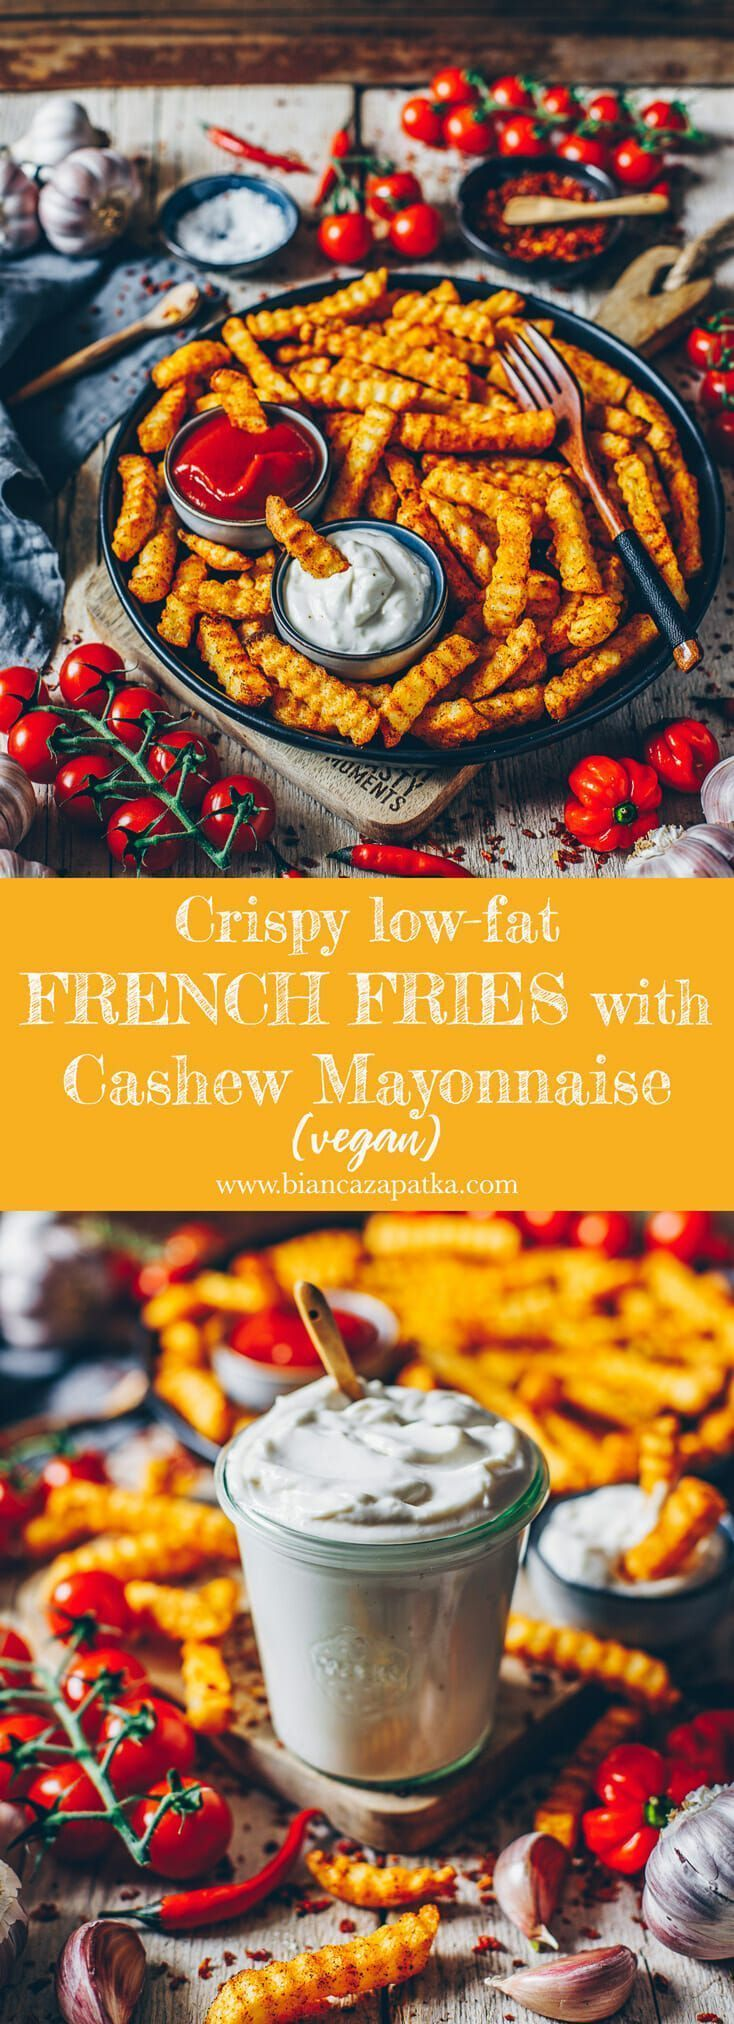 Crispy low-fat French Fries with Cashew Mayonnaise (vegan) #kartoffelspaltenofen French fries with ketchup and mayonnaise #potatowedgesselbermachen Crispy low-fat French Fries with Cashew Mayonnaise (vegan) #kartoffelspaltenofen French fries with ketchup and mayonnaise #kartoffelspaltenofen Crispy low-fat French Fries with Cashew Mayonnaise (vegan) #kartoffelspaltenofen French fries with ketchup and mayonnaise #potatowedgesselbermachen Crispy low-fat French Fries with Cashew Mayonnaise (vegan) # #pommesselbermachenofen